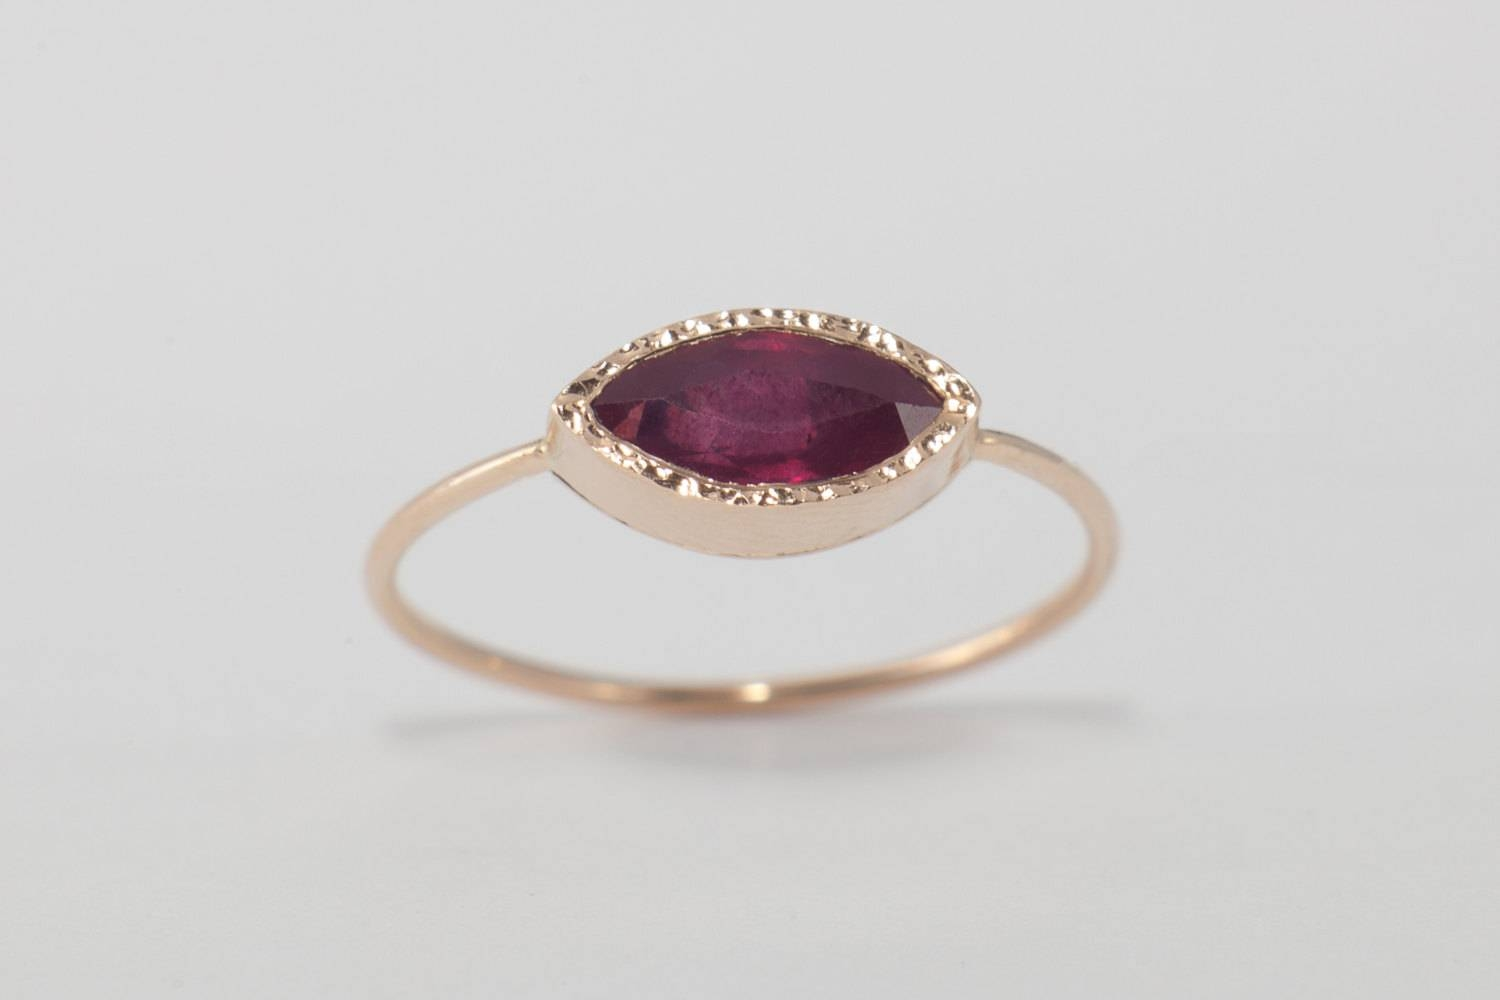 Ruby Ring , Ruby Engagement Ring, Simple Engagement, Natural Ruby Regarding Handcrafted Engagement Rings (View 4 of 15)